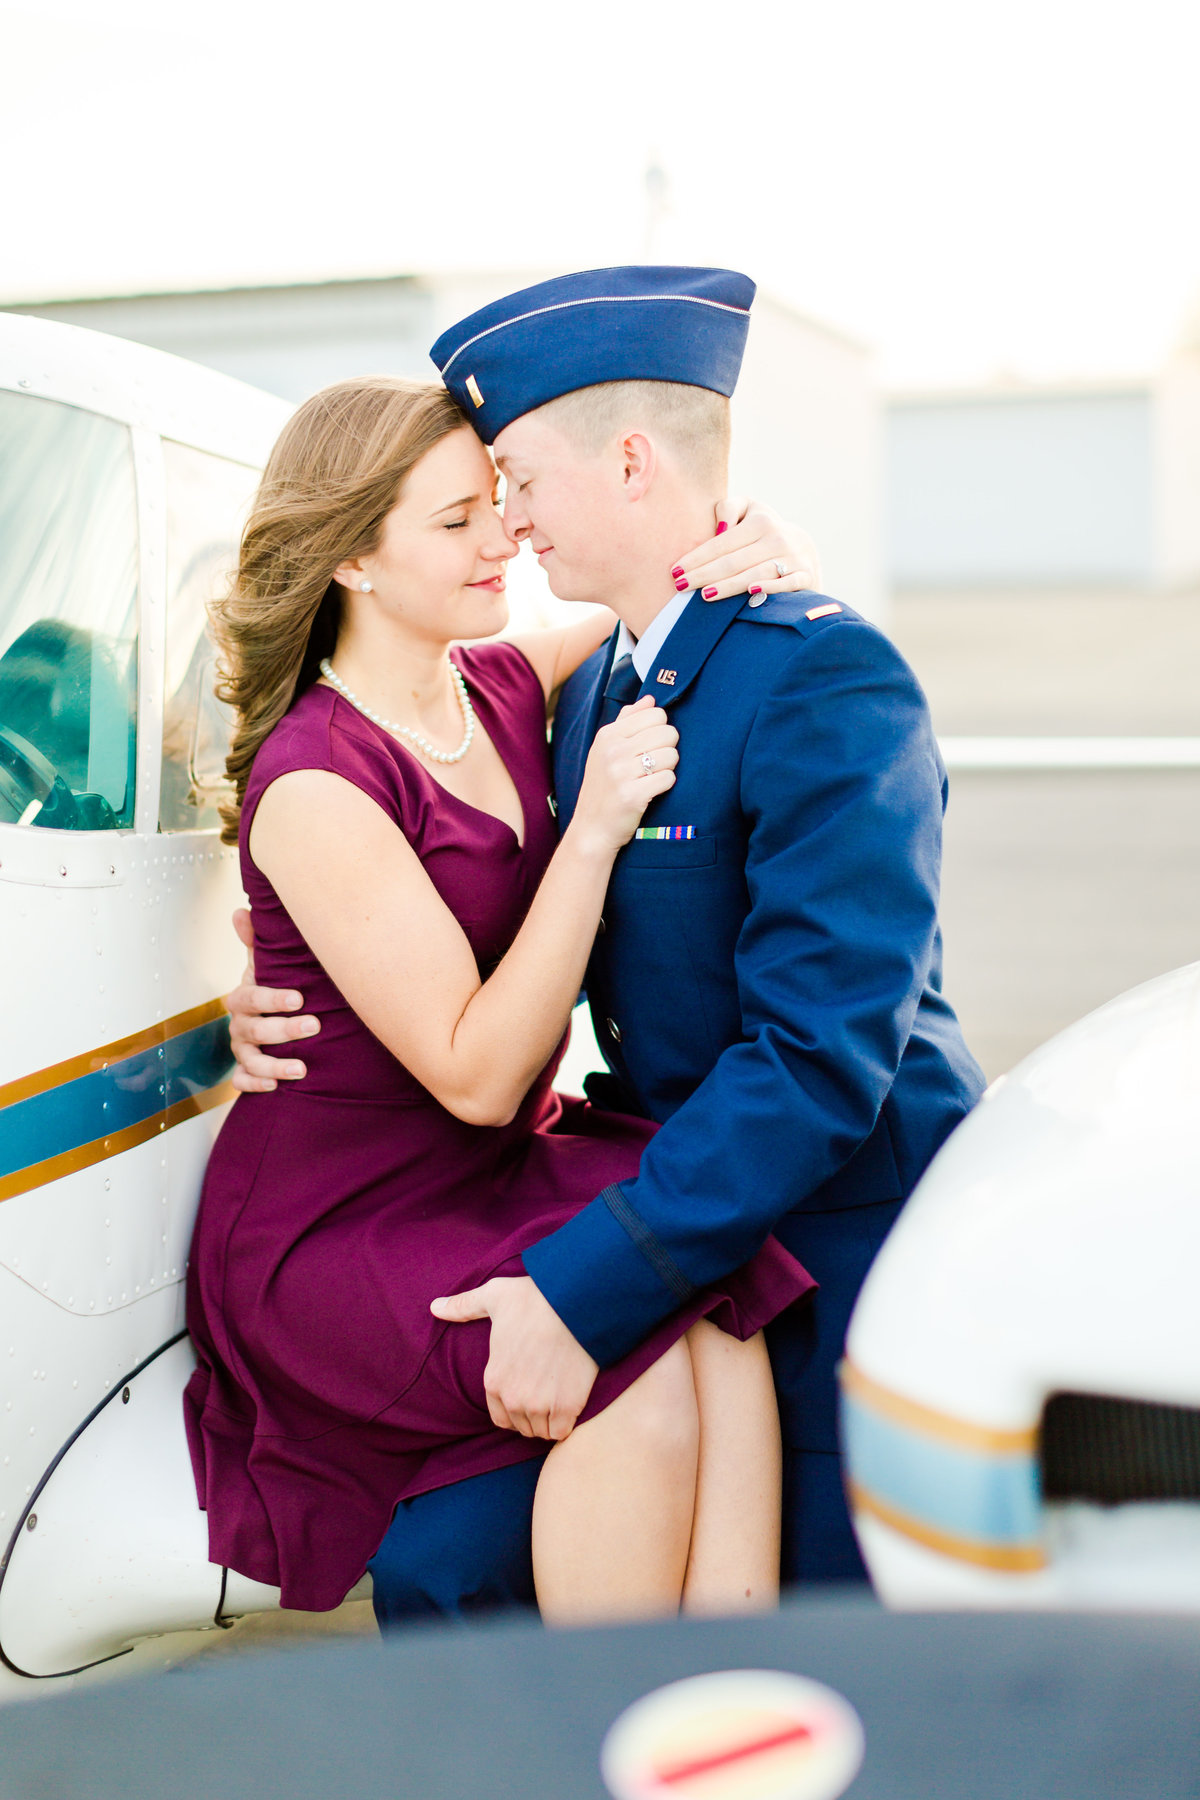 Airport Engagement Session Air Force Engagement Session at Shenandoah Valley Regional Airport in Weyers Cave, Virginia Emily Sacra Photography-47